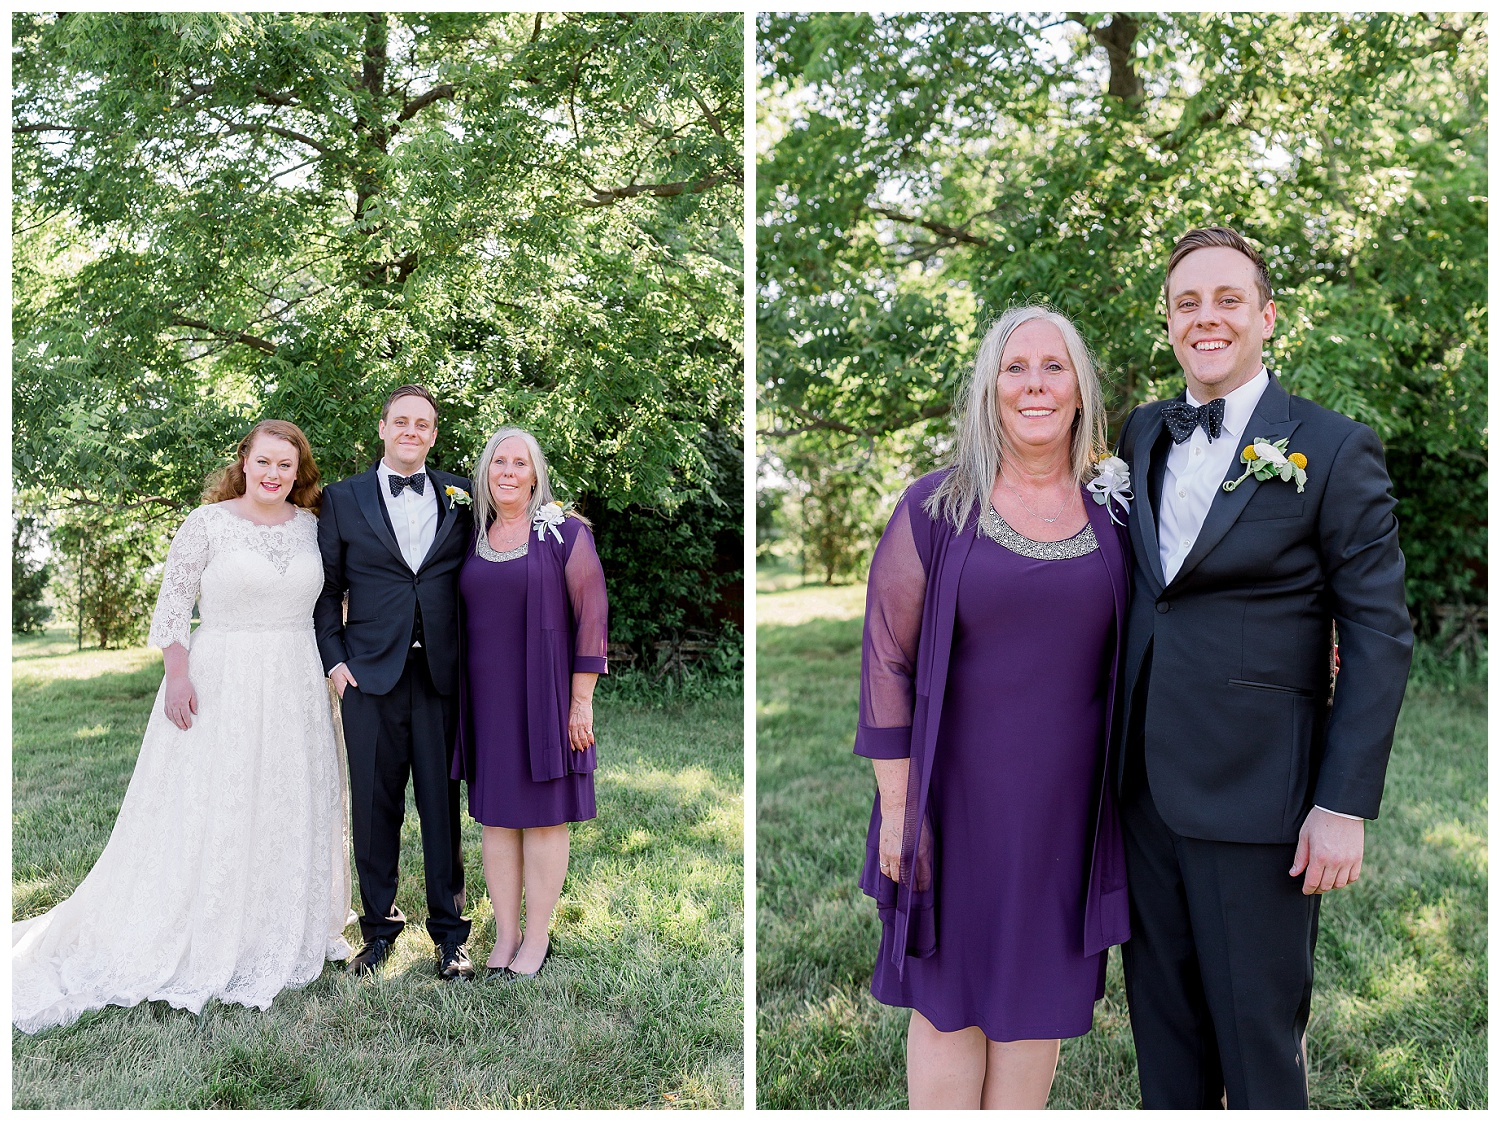 The-Legacy-at-Green-Hills-KC-Wedding-Photography-K+M-0713-Elizabeth-Ladean-Photography_photo-_8952.jpg